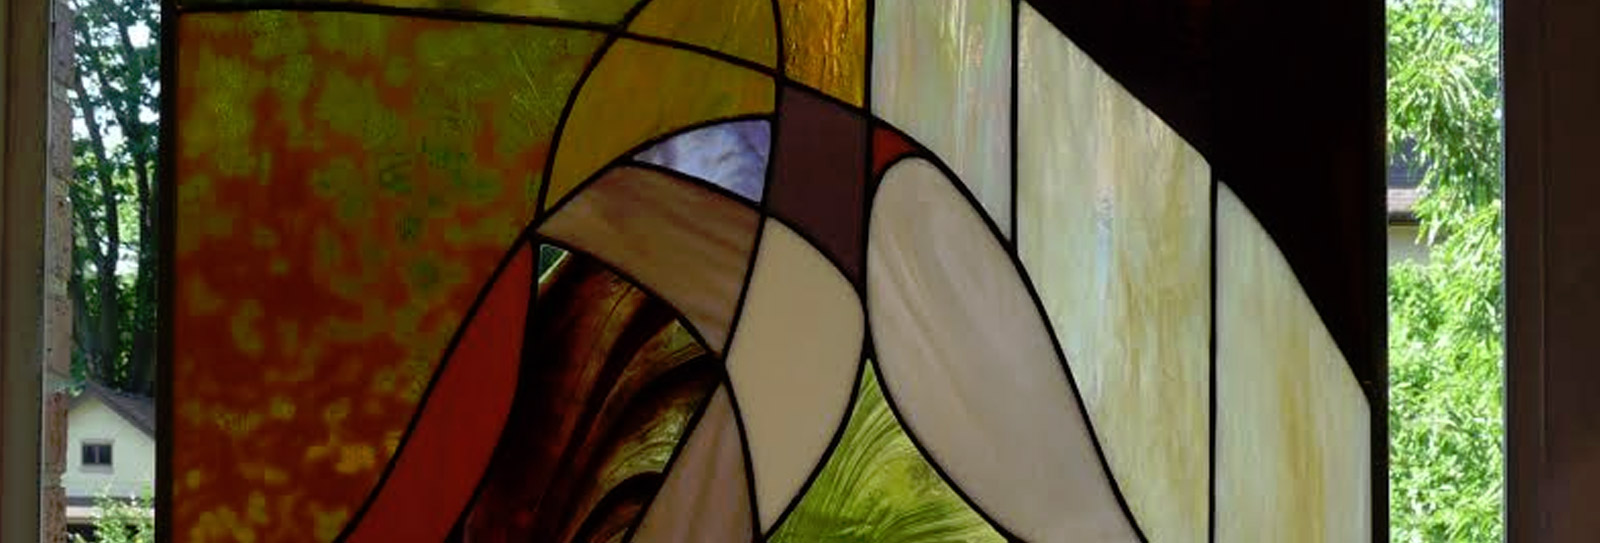 Risa Dera's Stained glass Exhibition